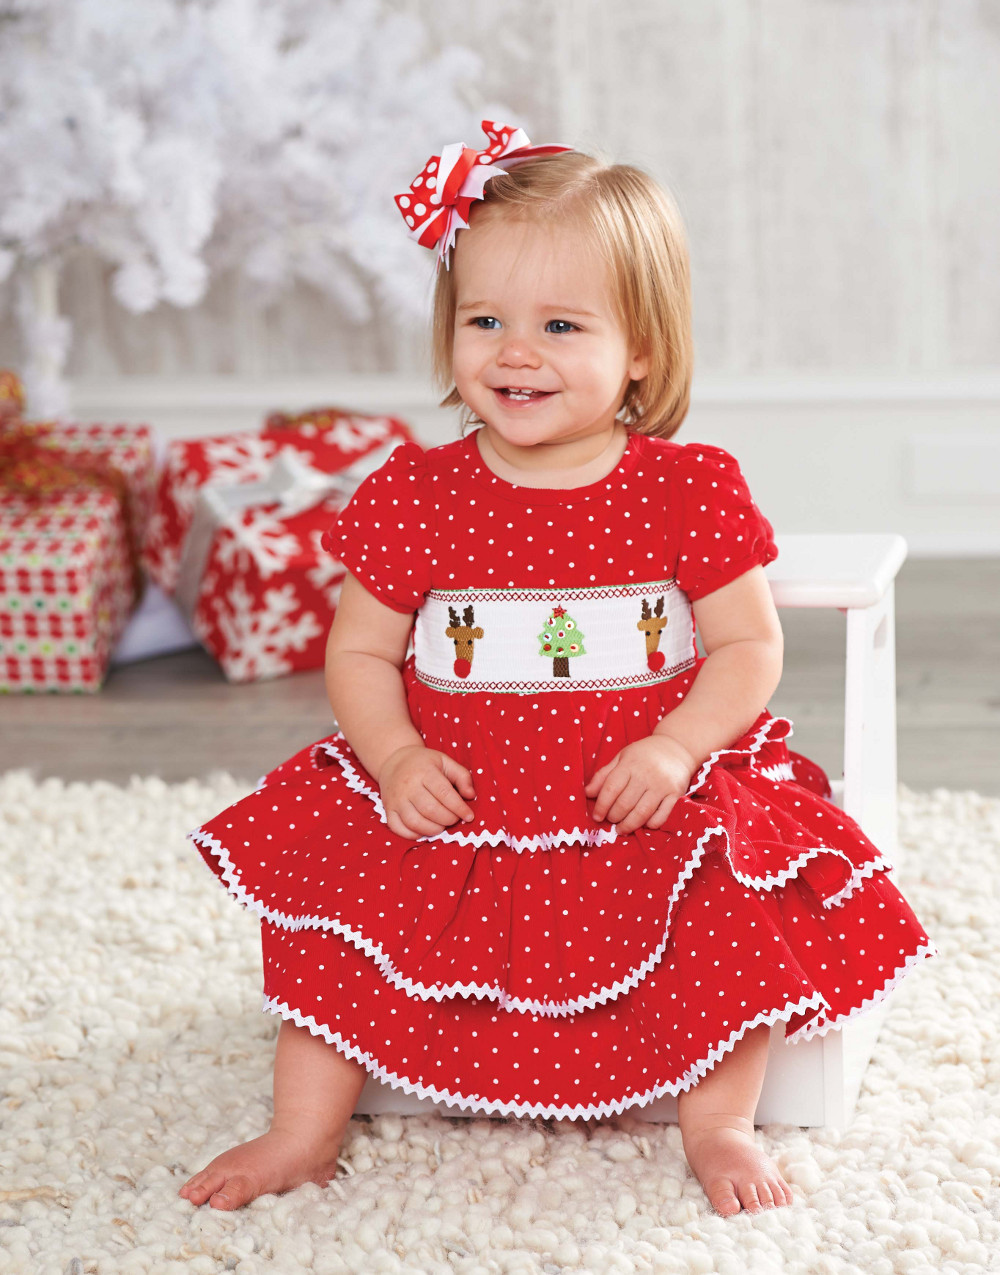 Mud Pie Holiday Dress: Red Girls Infant or Toddler Corduroy Smocked Chistmas Dress 12-18 months at Sears.com